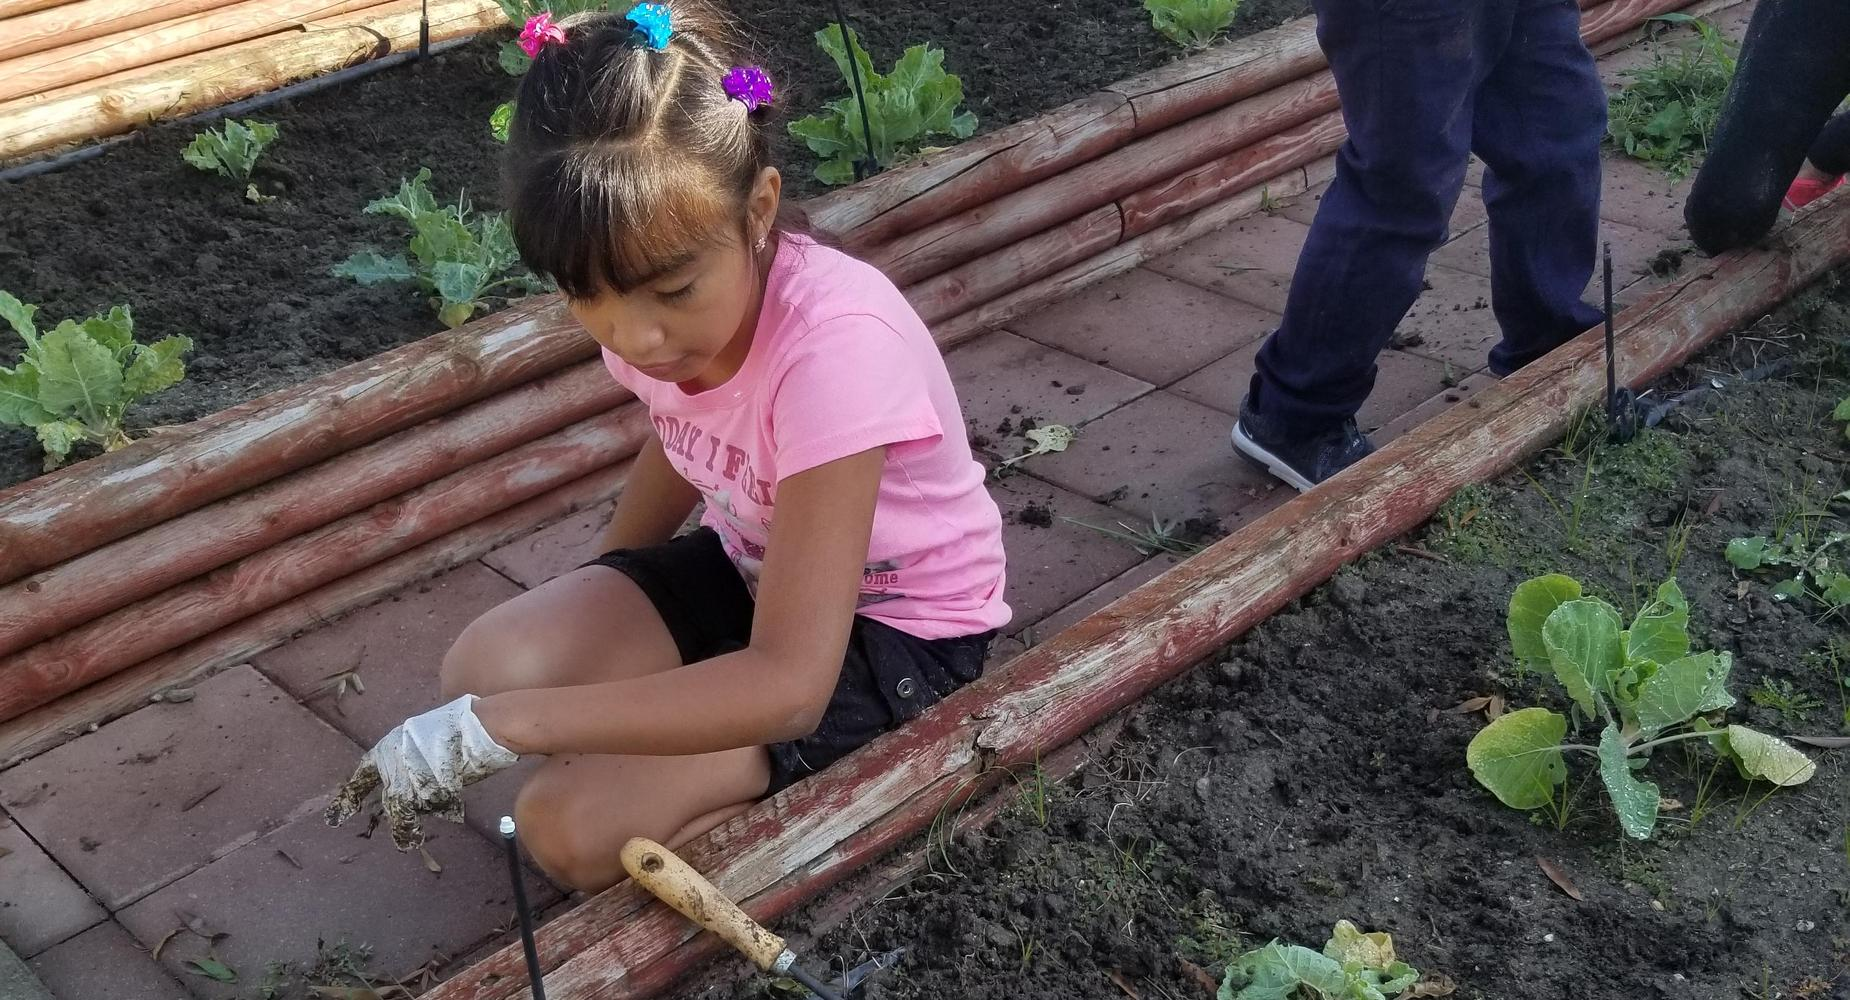 3rd grader working in the school garden.